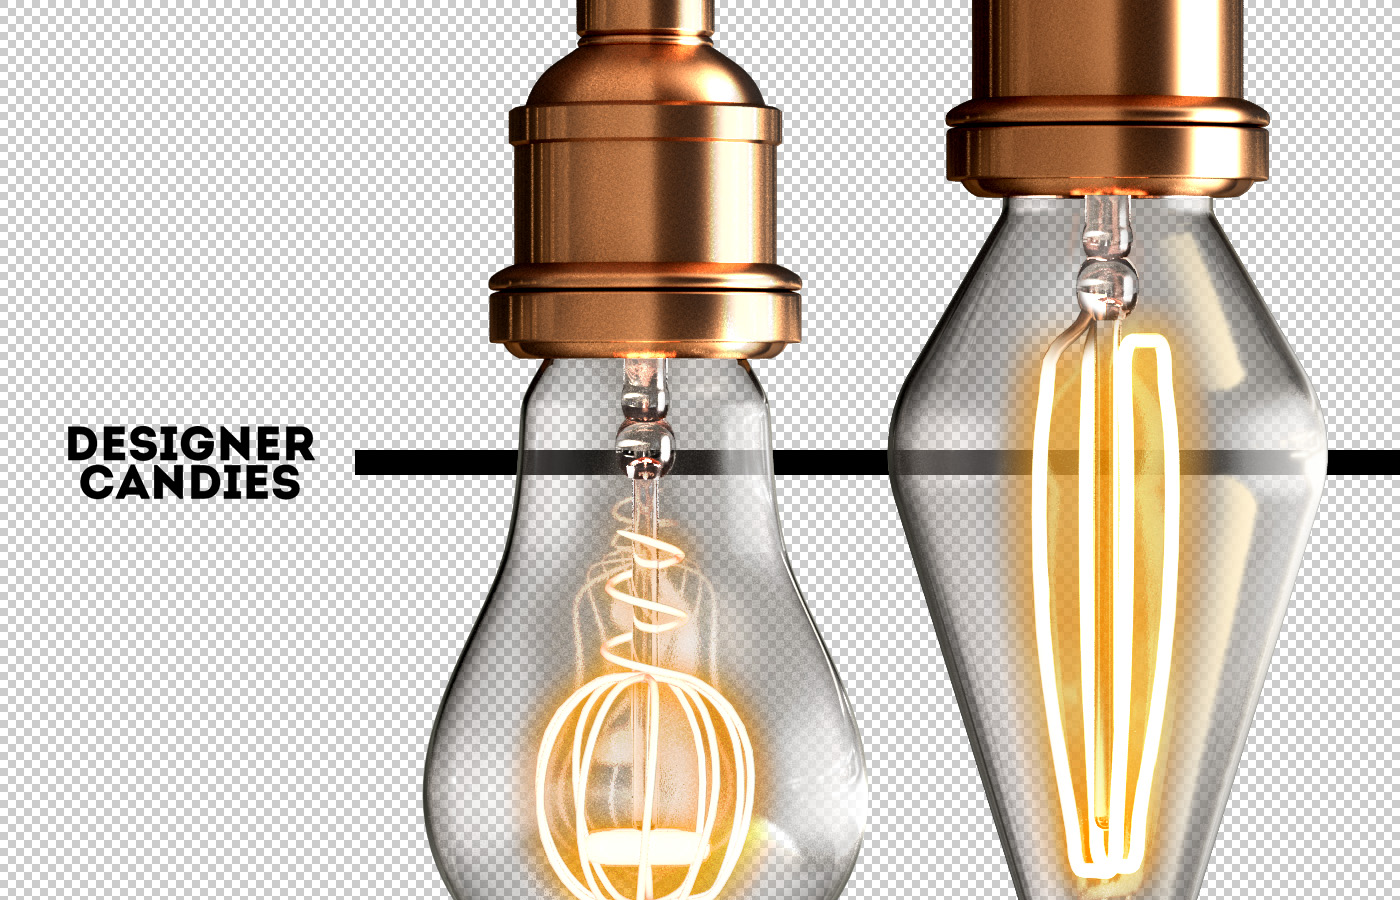 Transparent PNG Lightbulbs